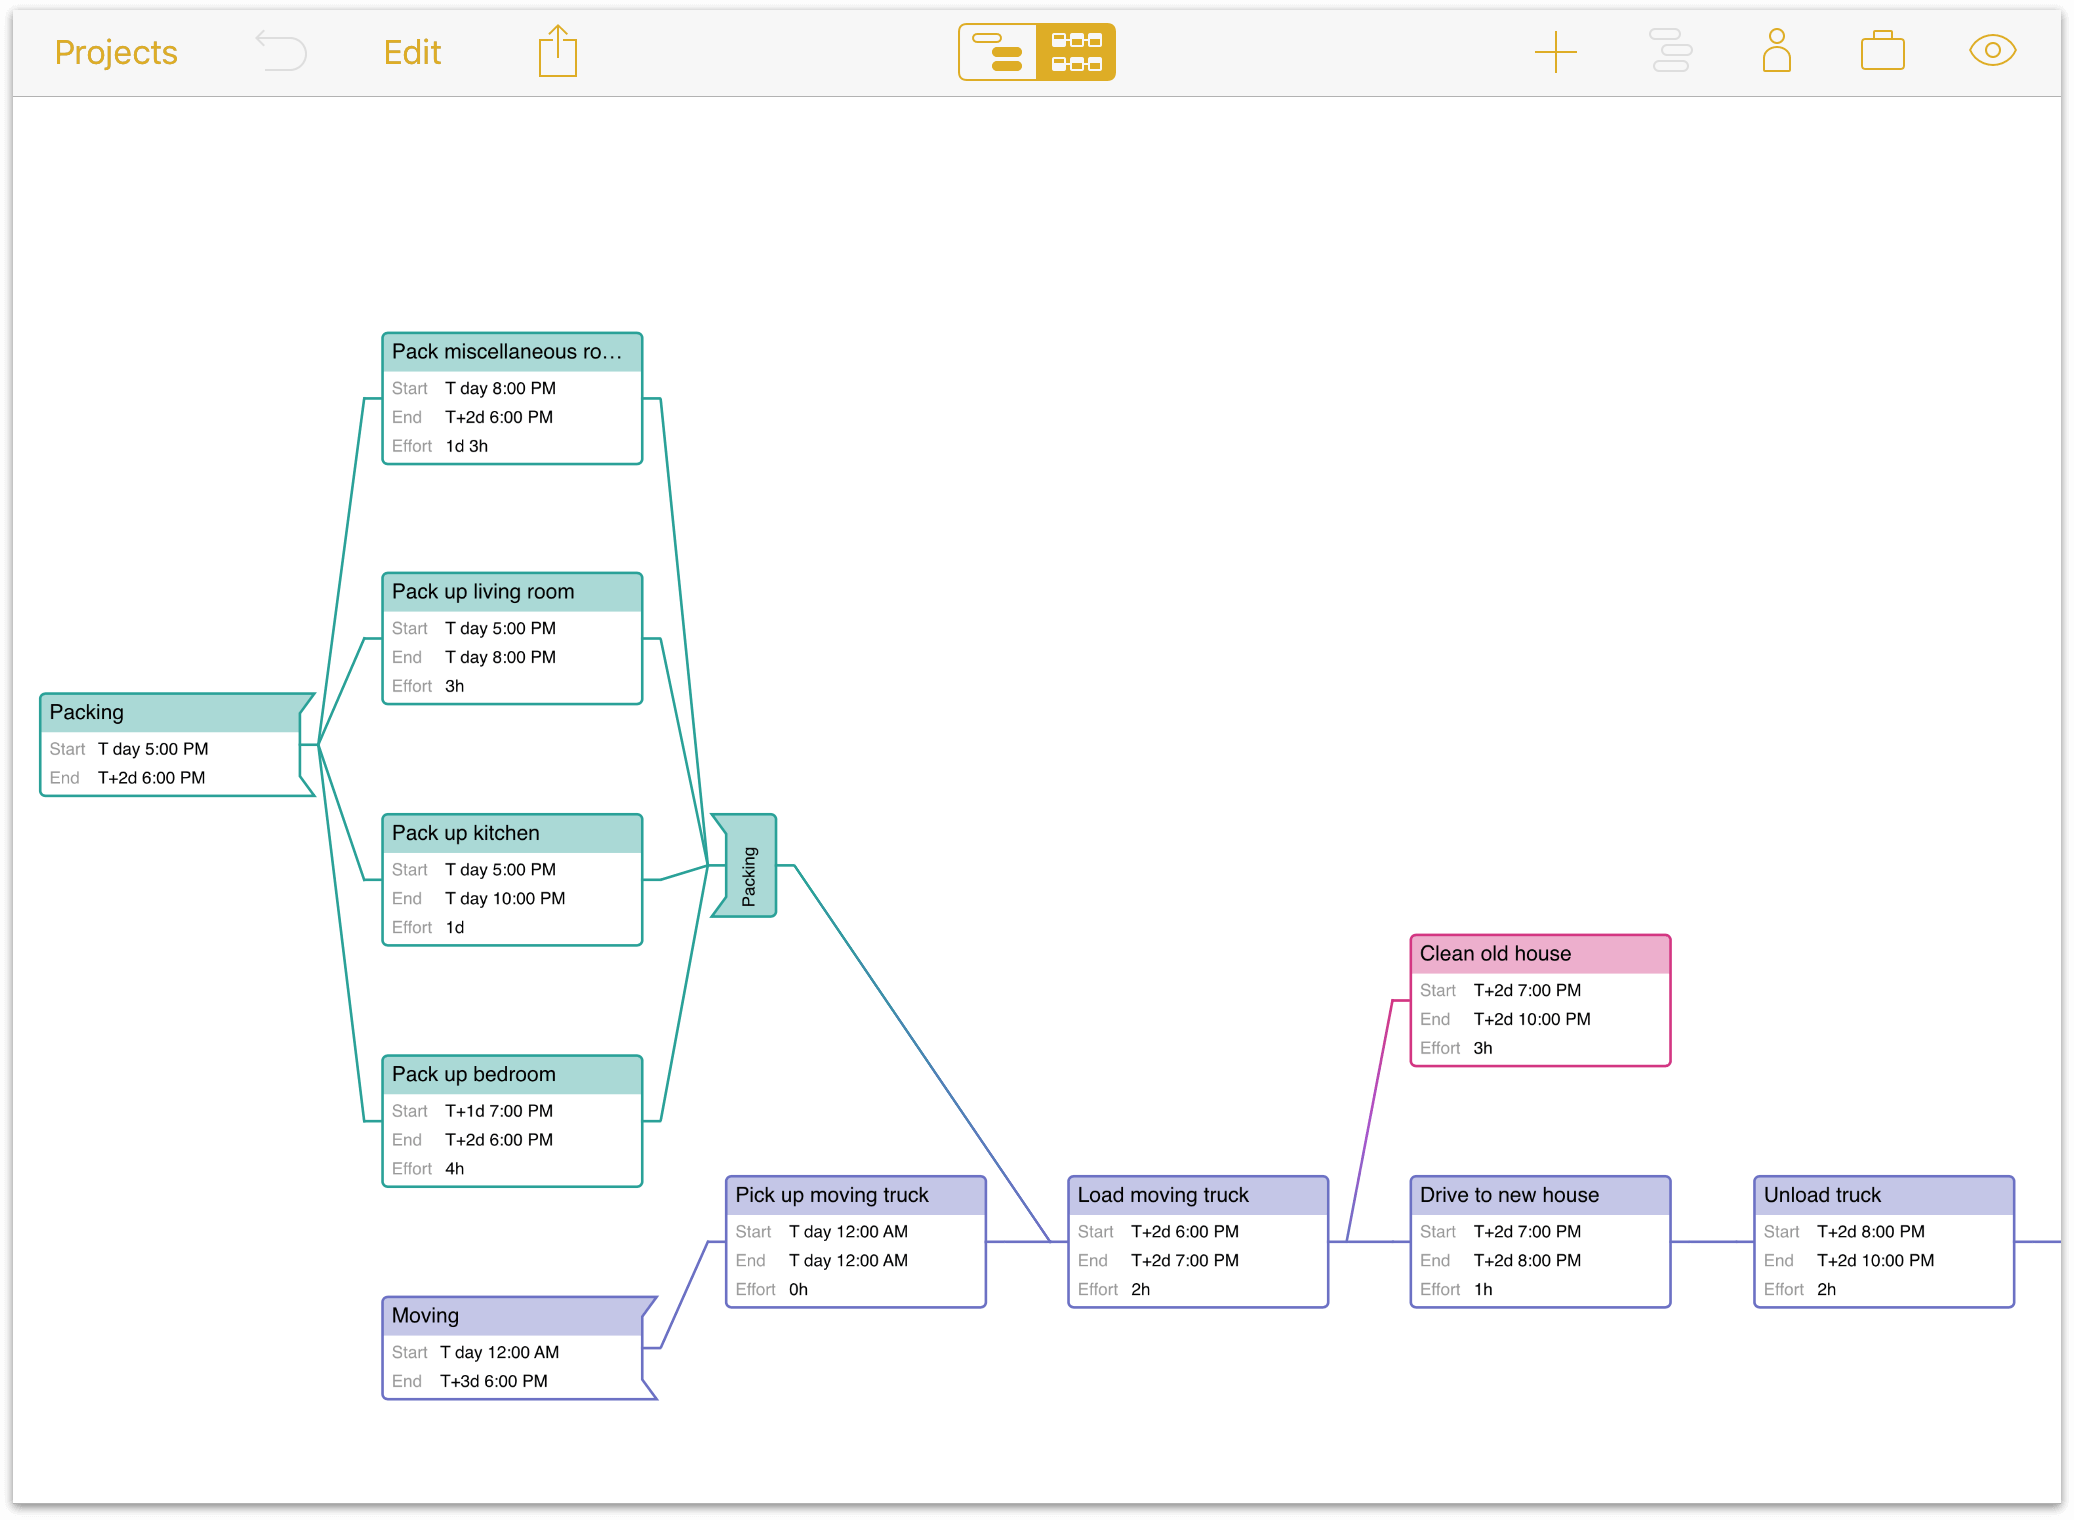 OmniPlan 3 For IOS User Manual Working In The Project Editor